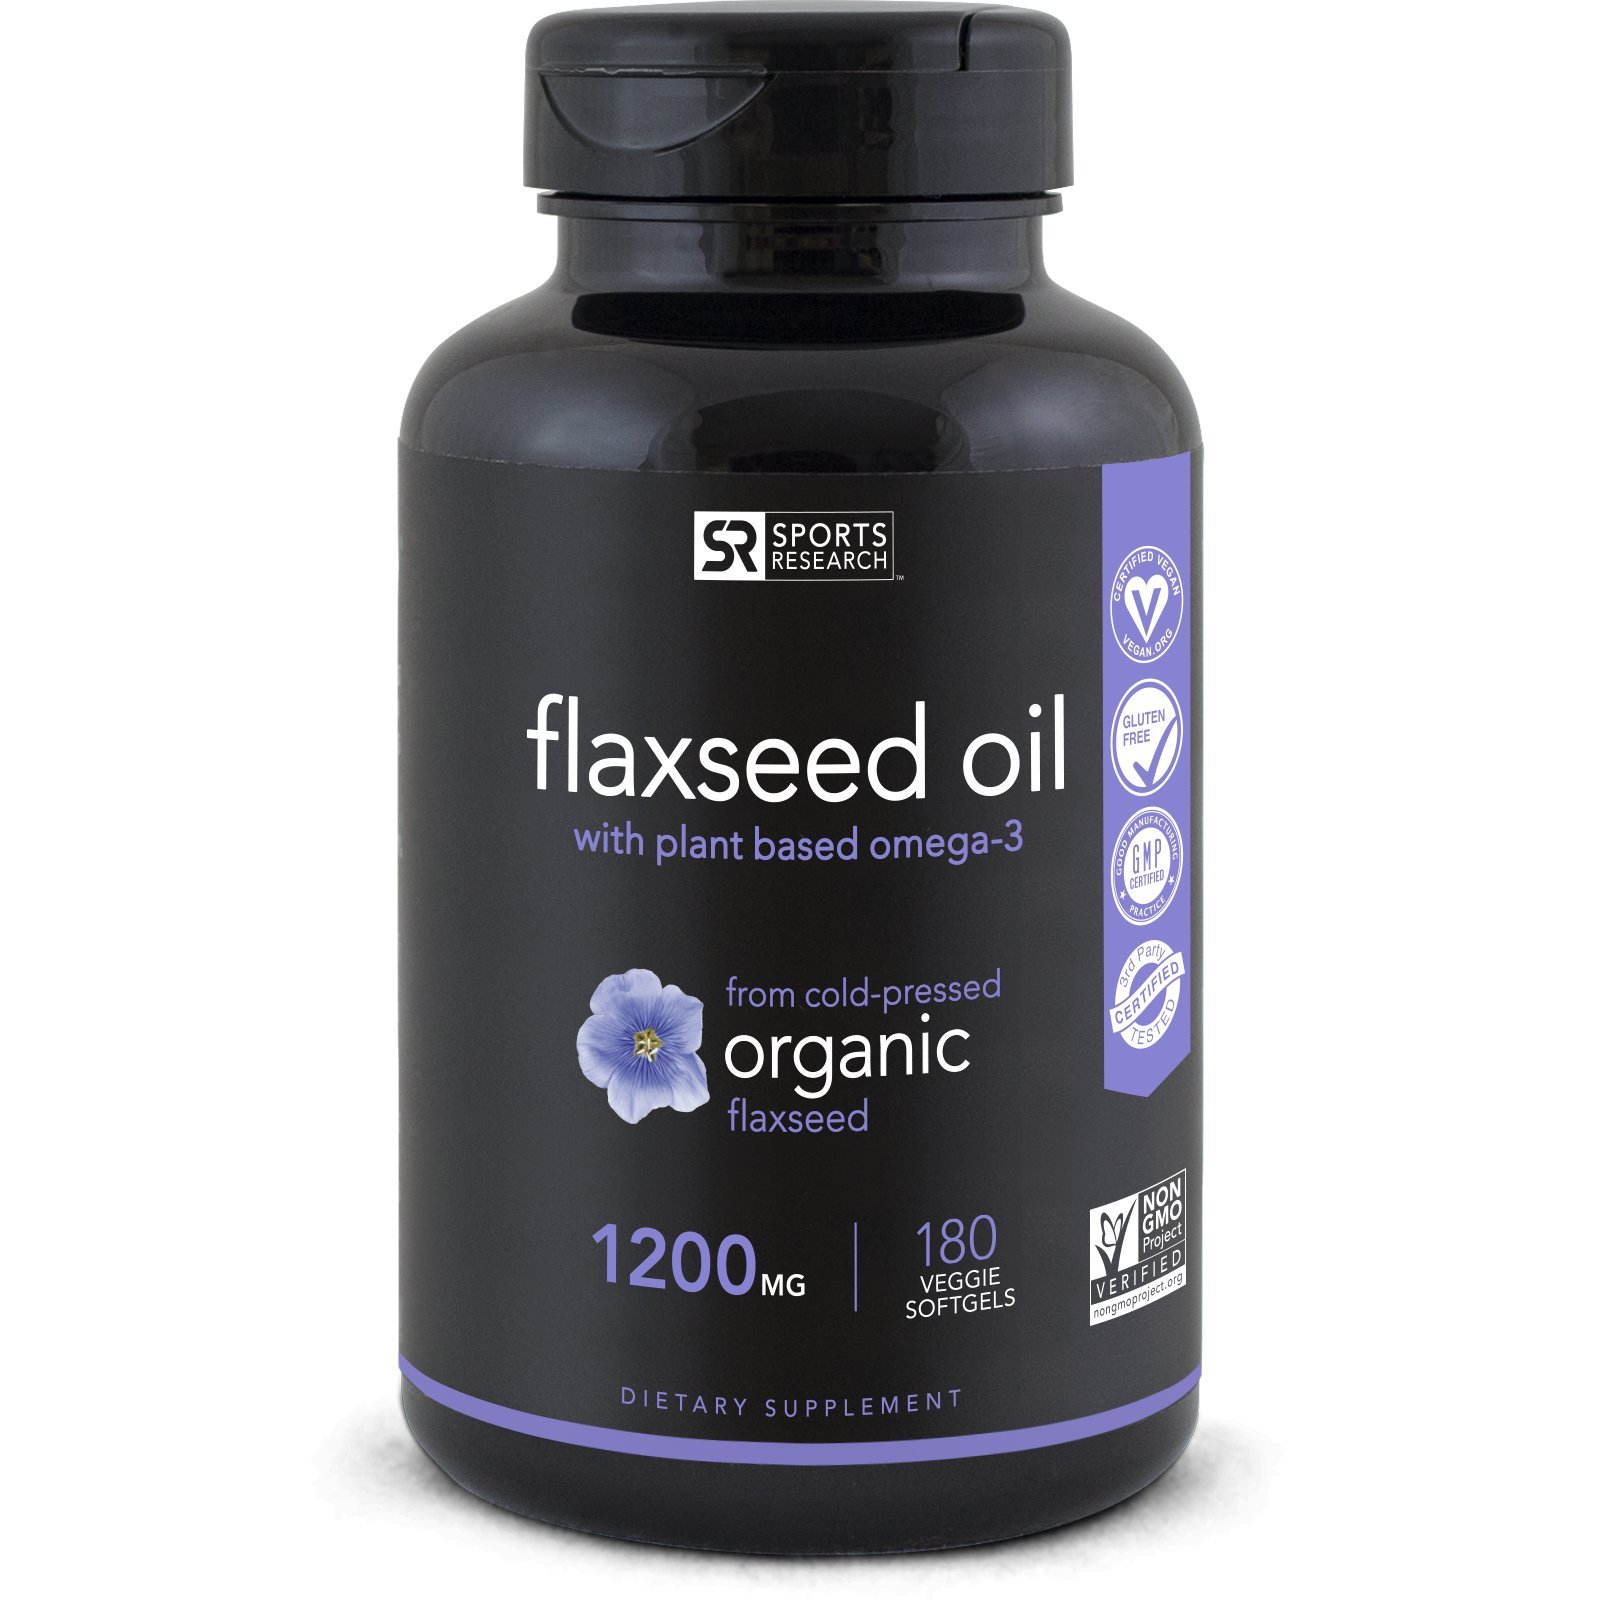 Vegan Flaxseed Oil with Plant Based Omega's 3,6 & 9 | Promotes Cardiovascular Health, Immune Support & Healthy Hair + Skin | Vegan Certified & Non-GMO Project Verified (180 Veggie-Softgels)